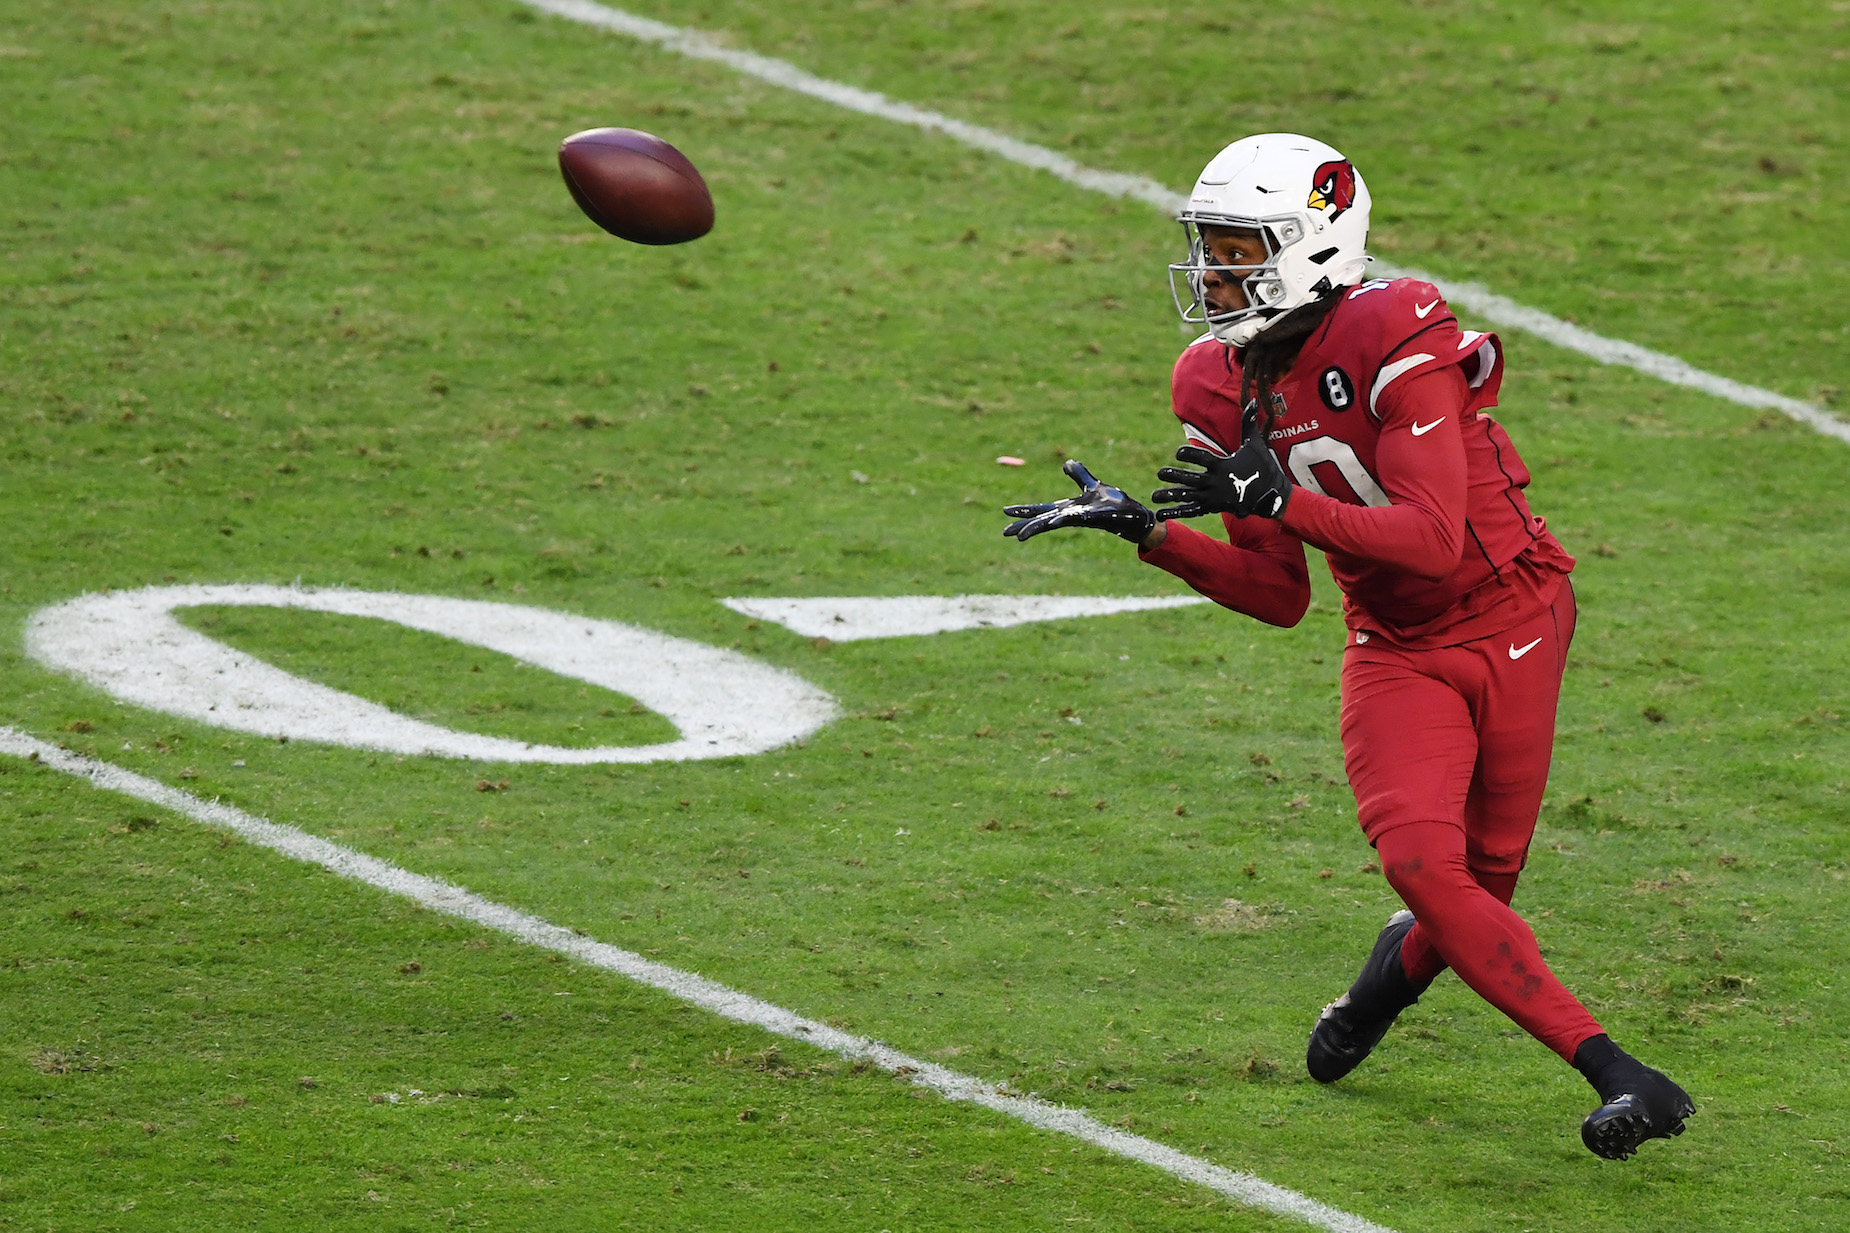 Why did the Houston Texans trade DeAndre Hopkins to the Arizona Cardinals?